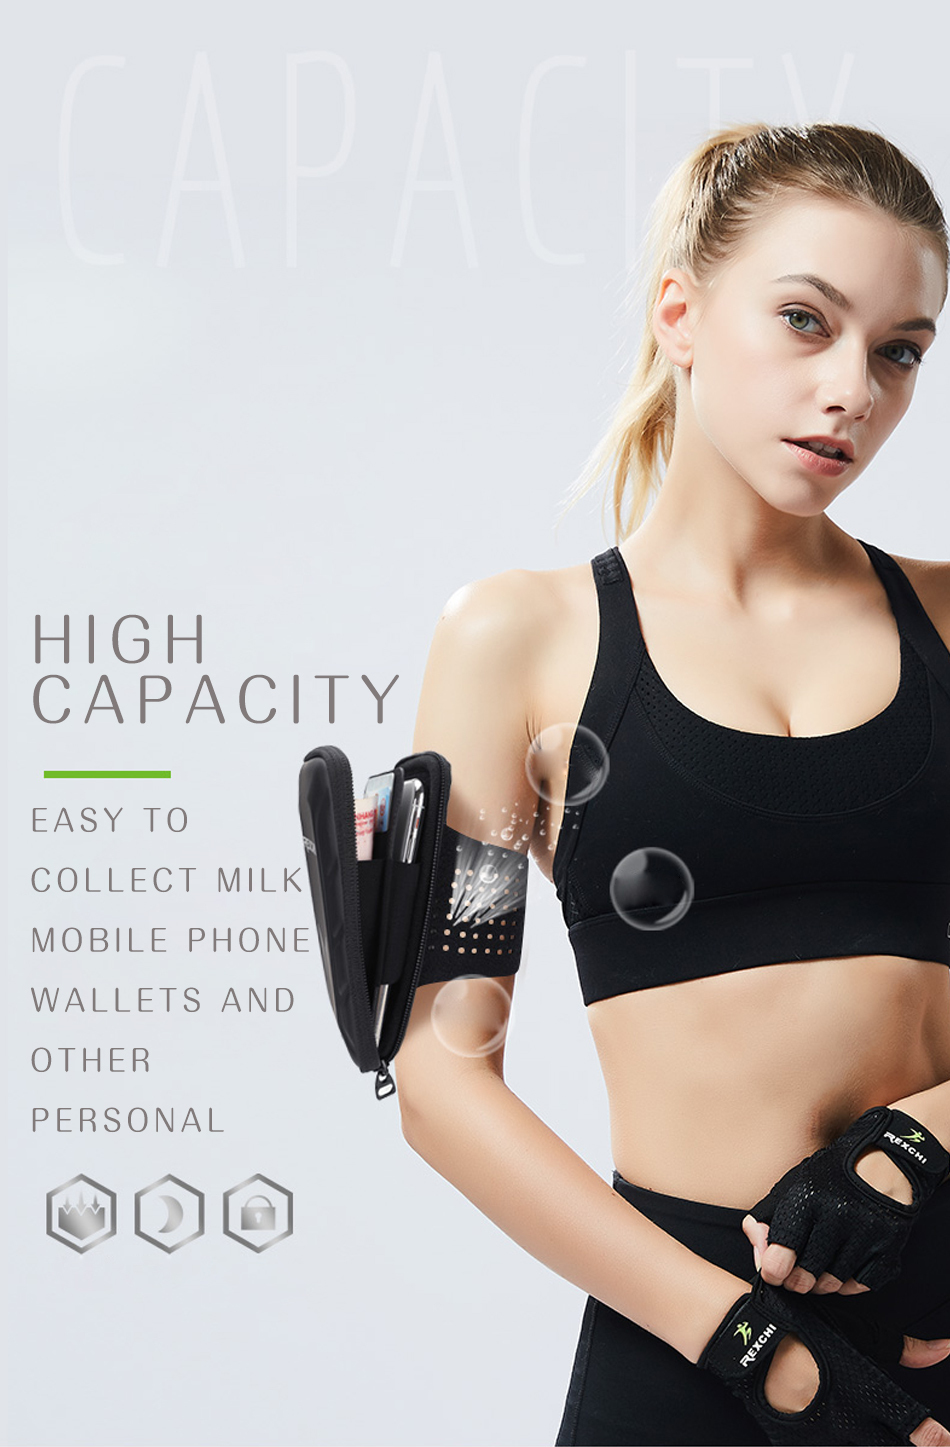 REXCHI Outdoor Trail Running Arm Bag Ultralight Waterproof Gear Women Sport Accessories Mobile Phone Holder Lady Fitness Wallet 13